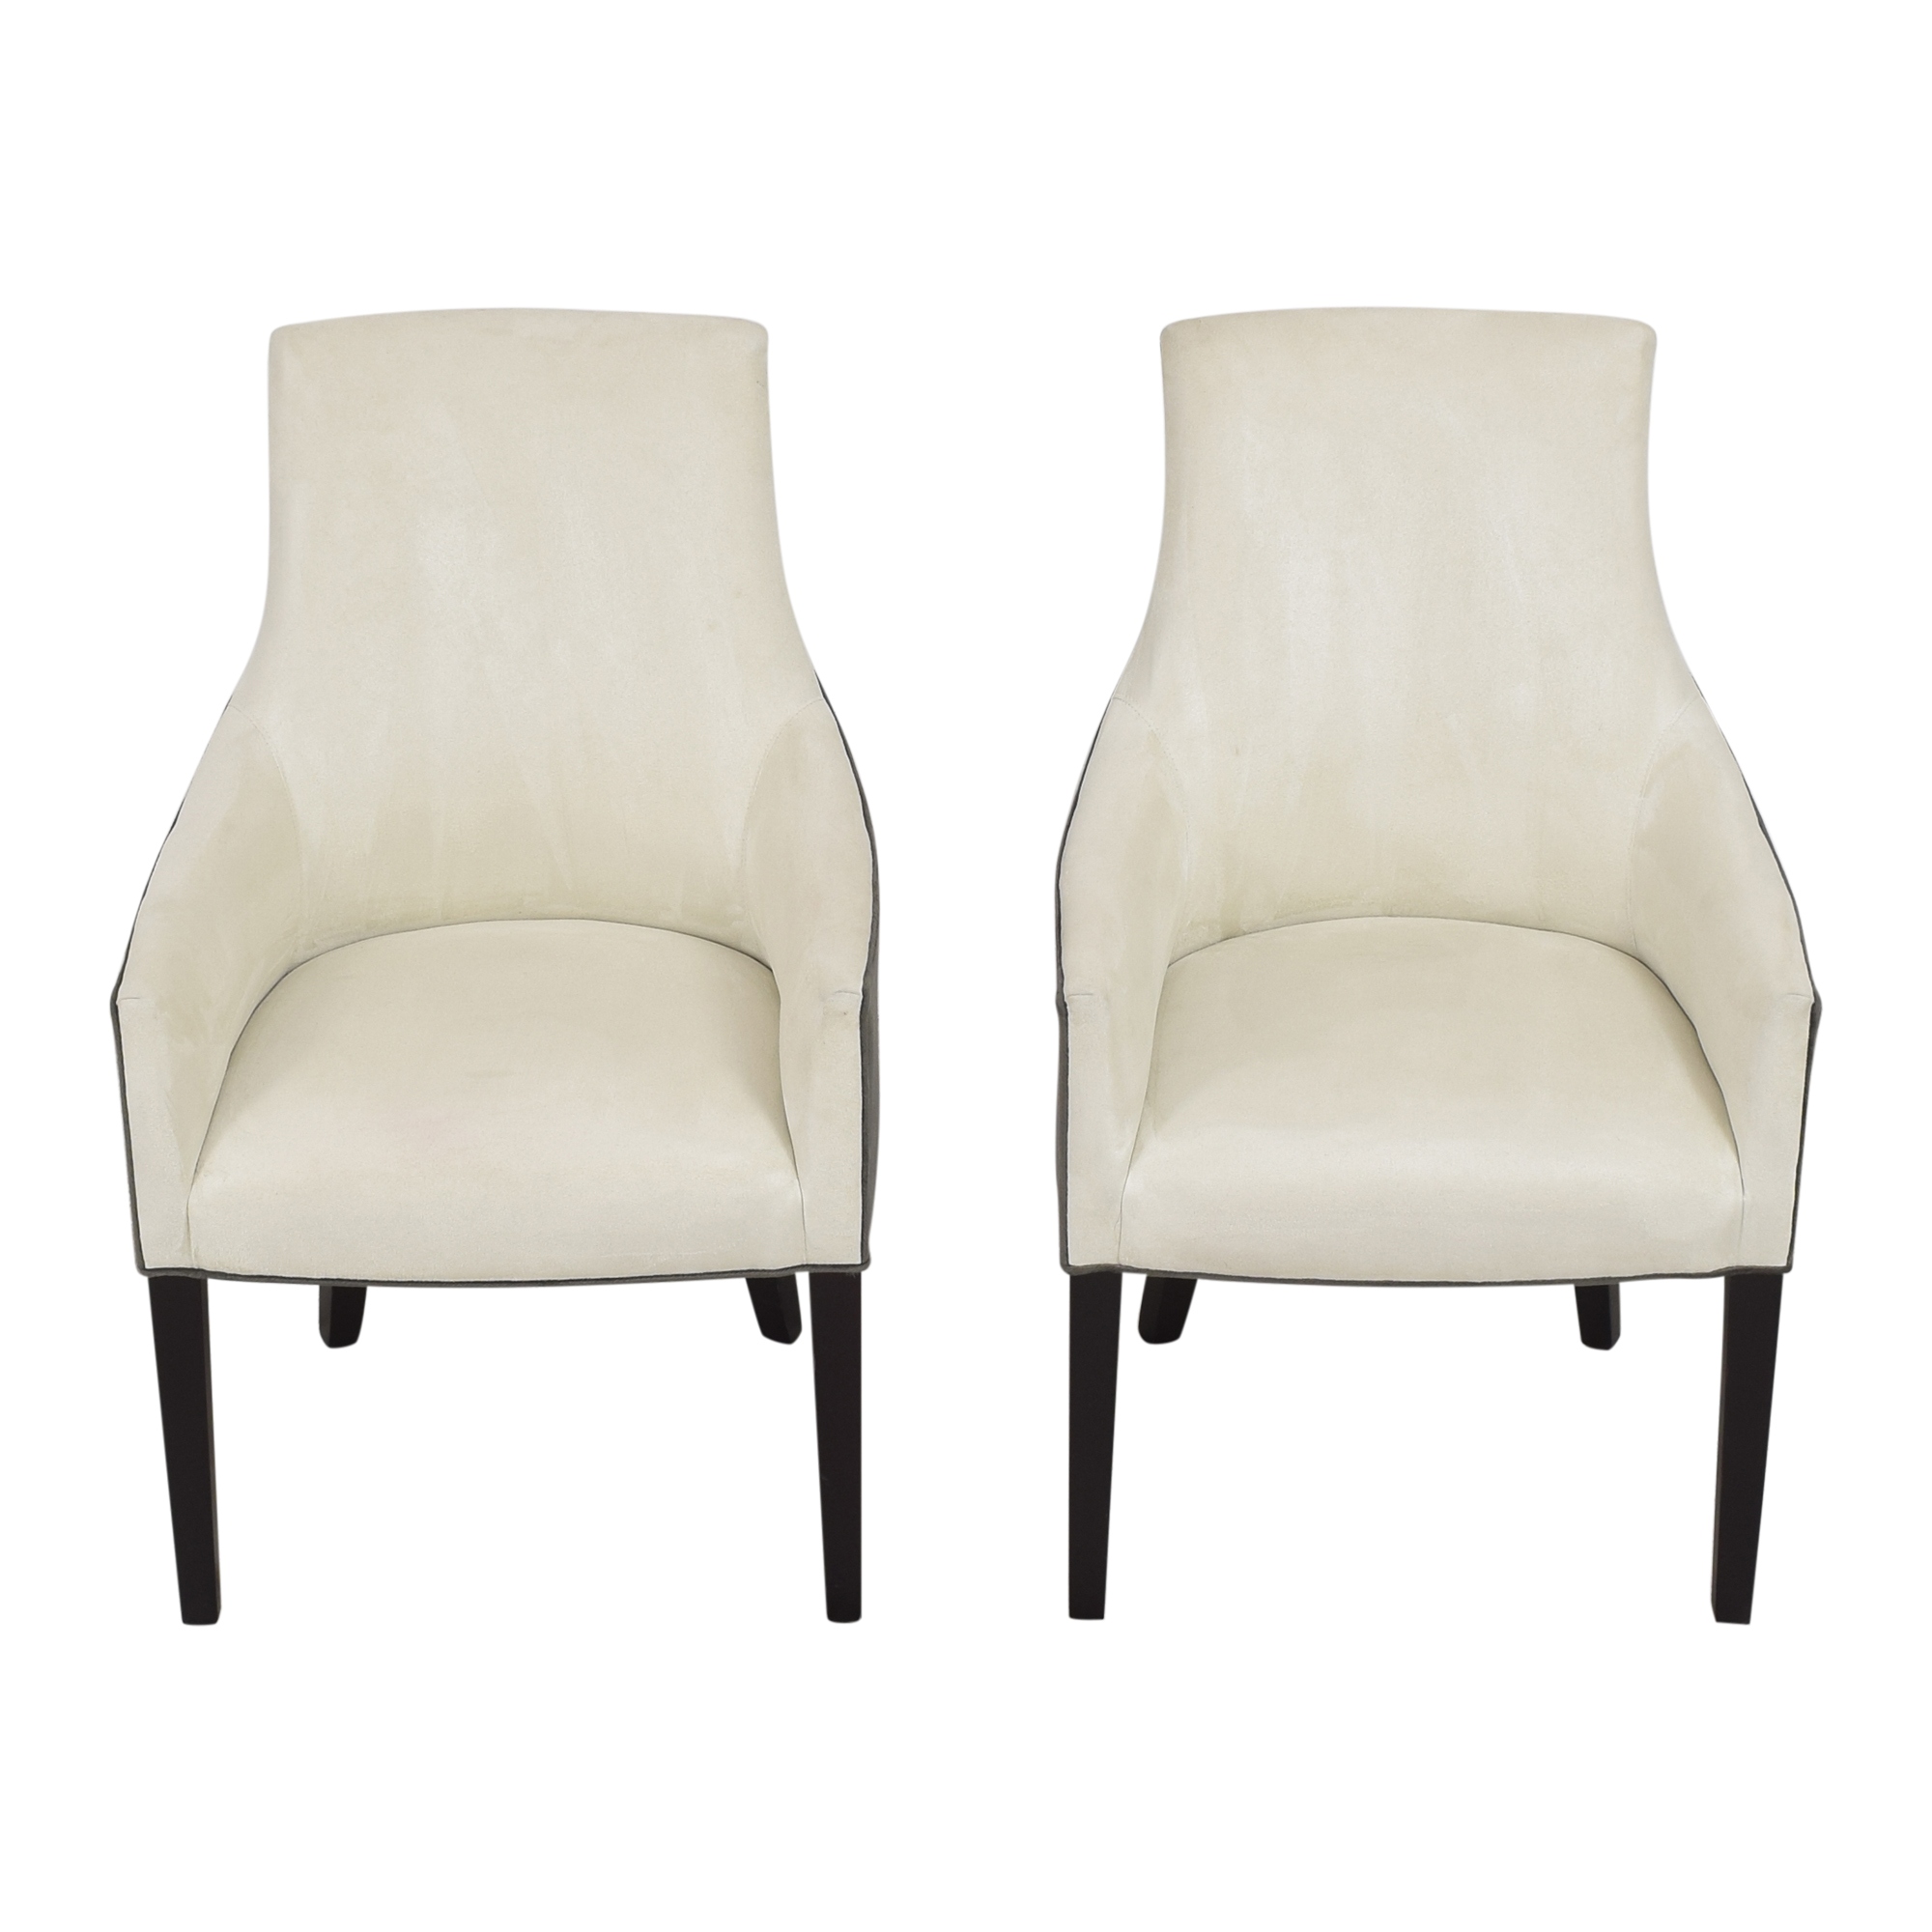 Mitchell Gold + Bob Williams Mitchell Gold + Bob Williams Ada Dining Arm Chairs Dining Chairs